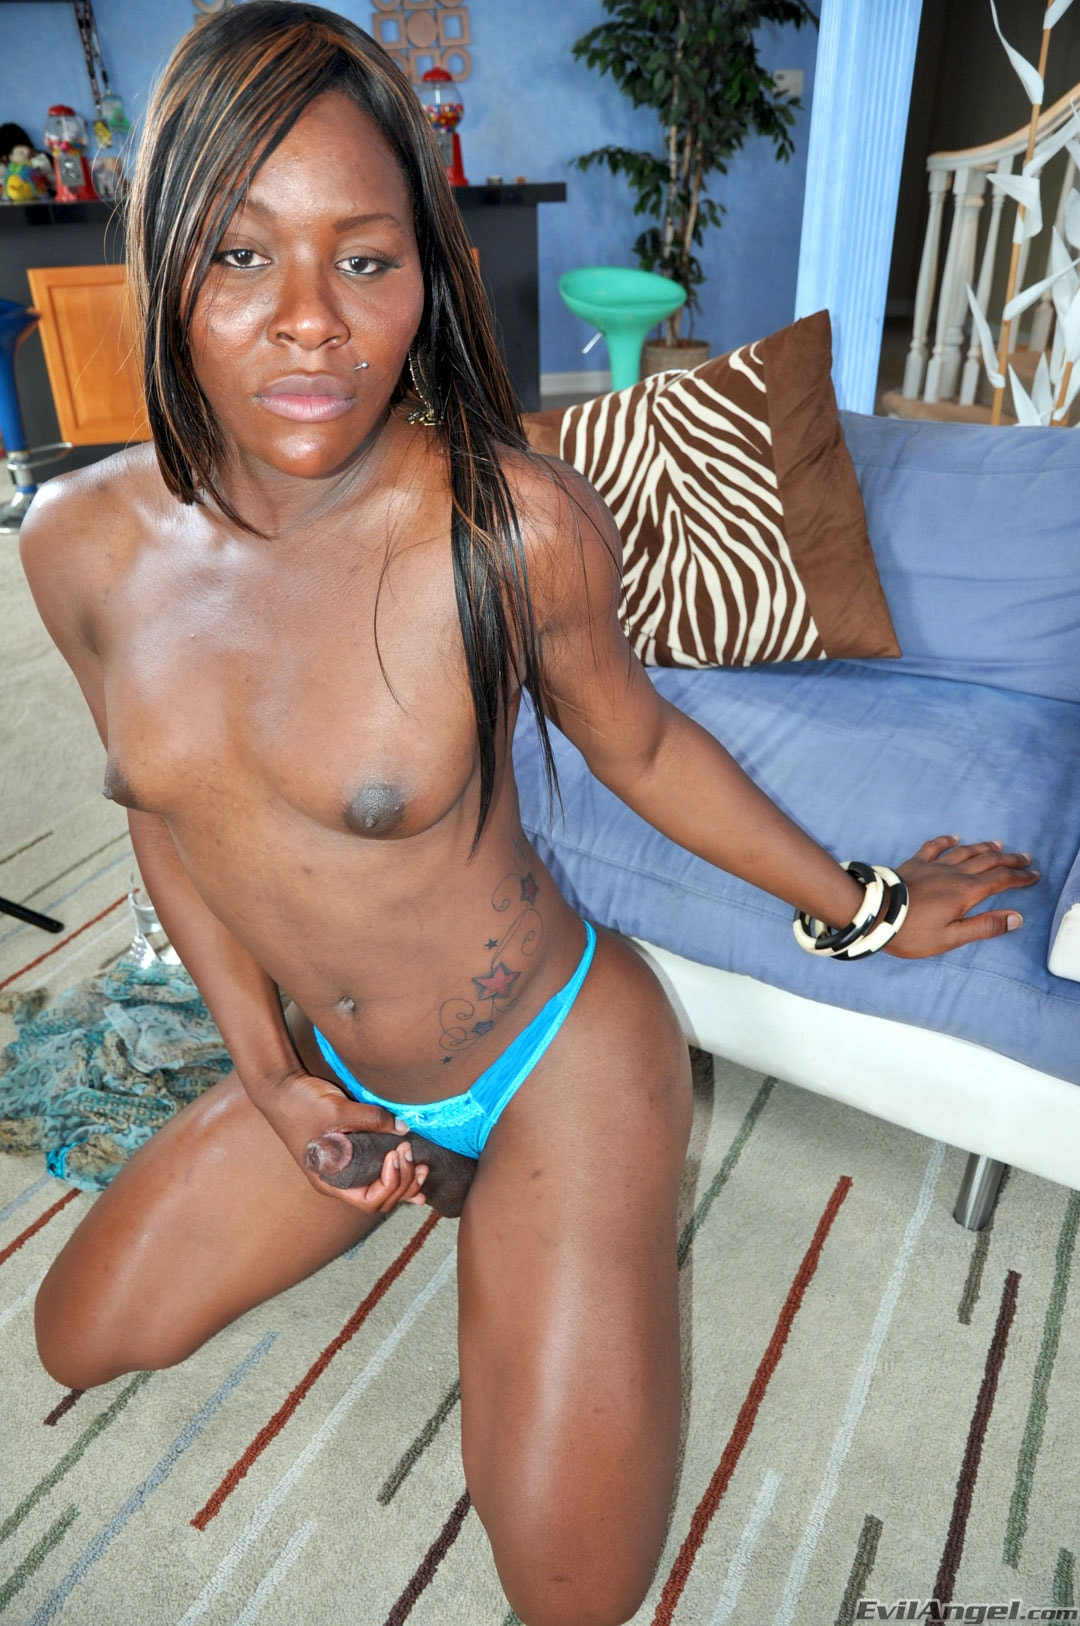 I Love Black Shemales 'Black Shemale Idol - The Auditions' starring Sex Kitten (Photo 26)